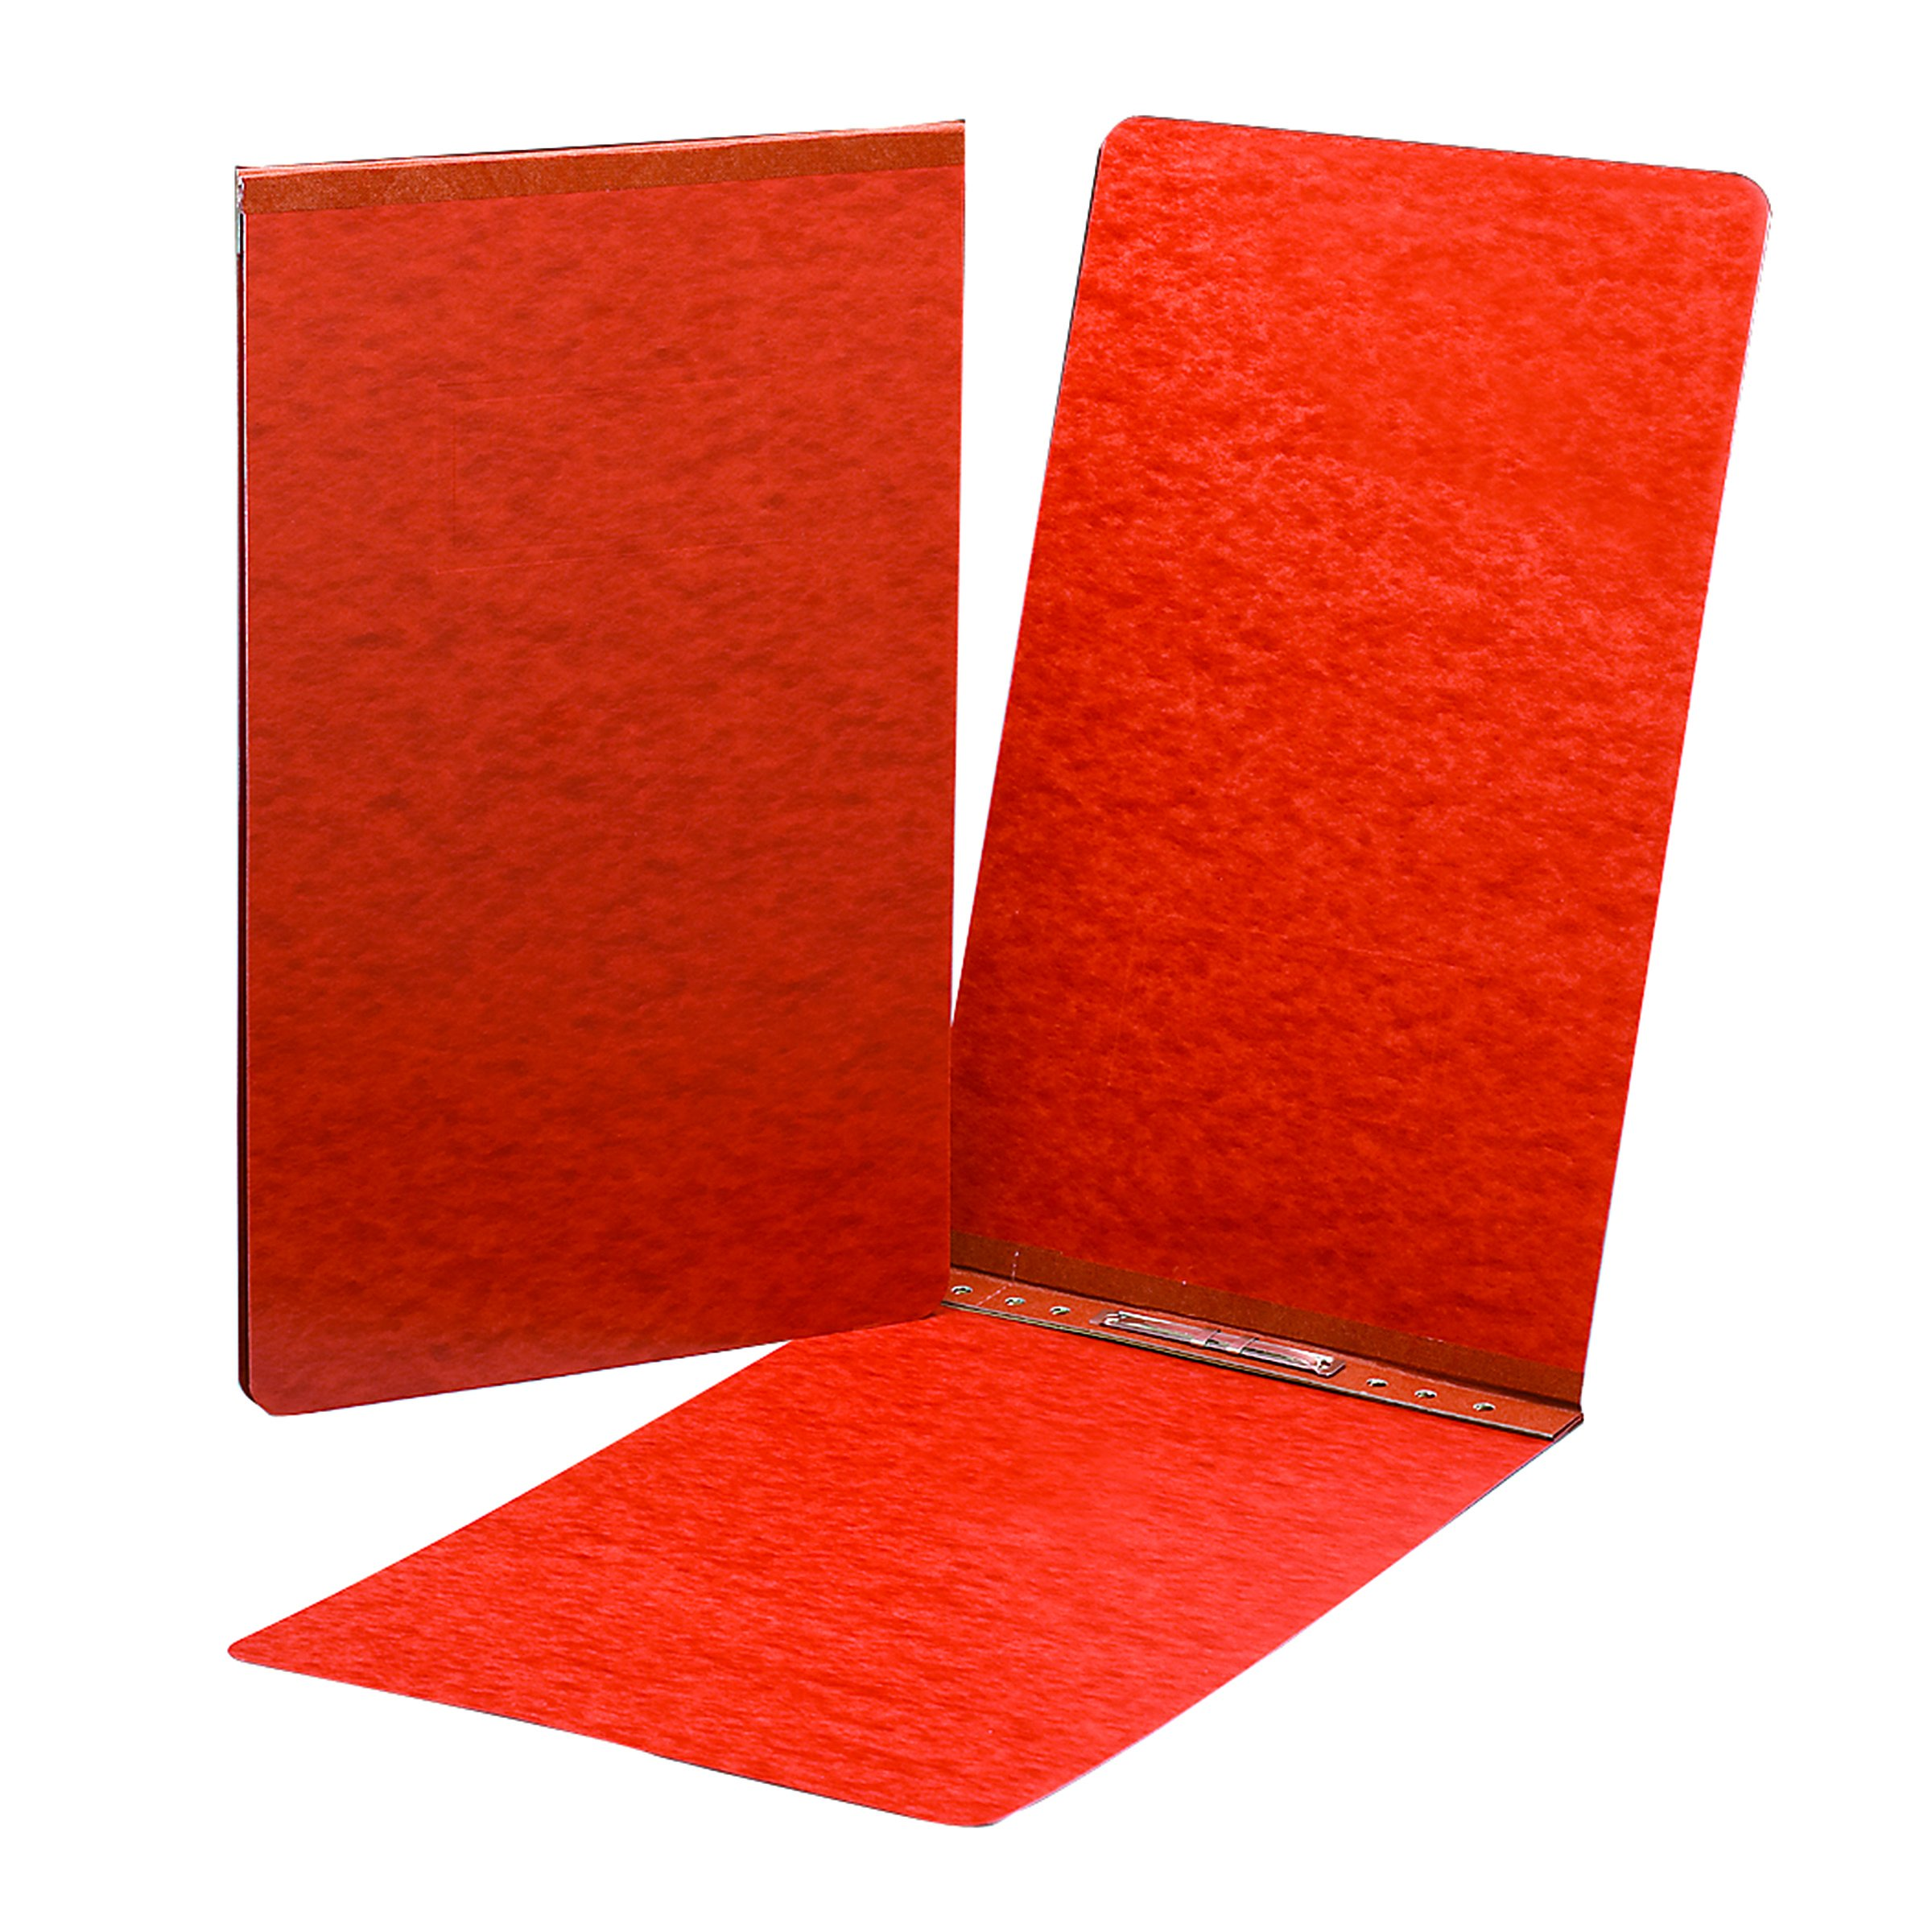 Smead PressGuard Binder Cover, Metal Prong with Compressor, Top Fastener, 350 Sheets/3'' Capacity, 11'' x 17'', Red, 10 per Box (81778)